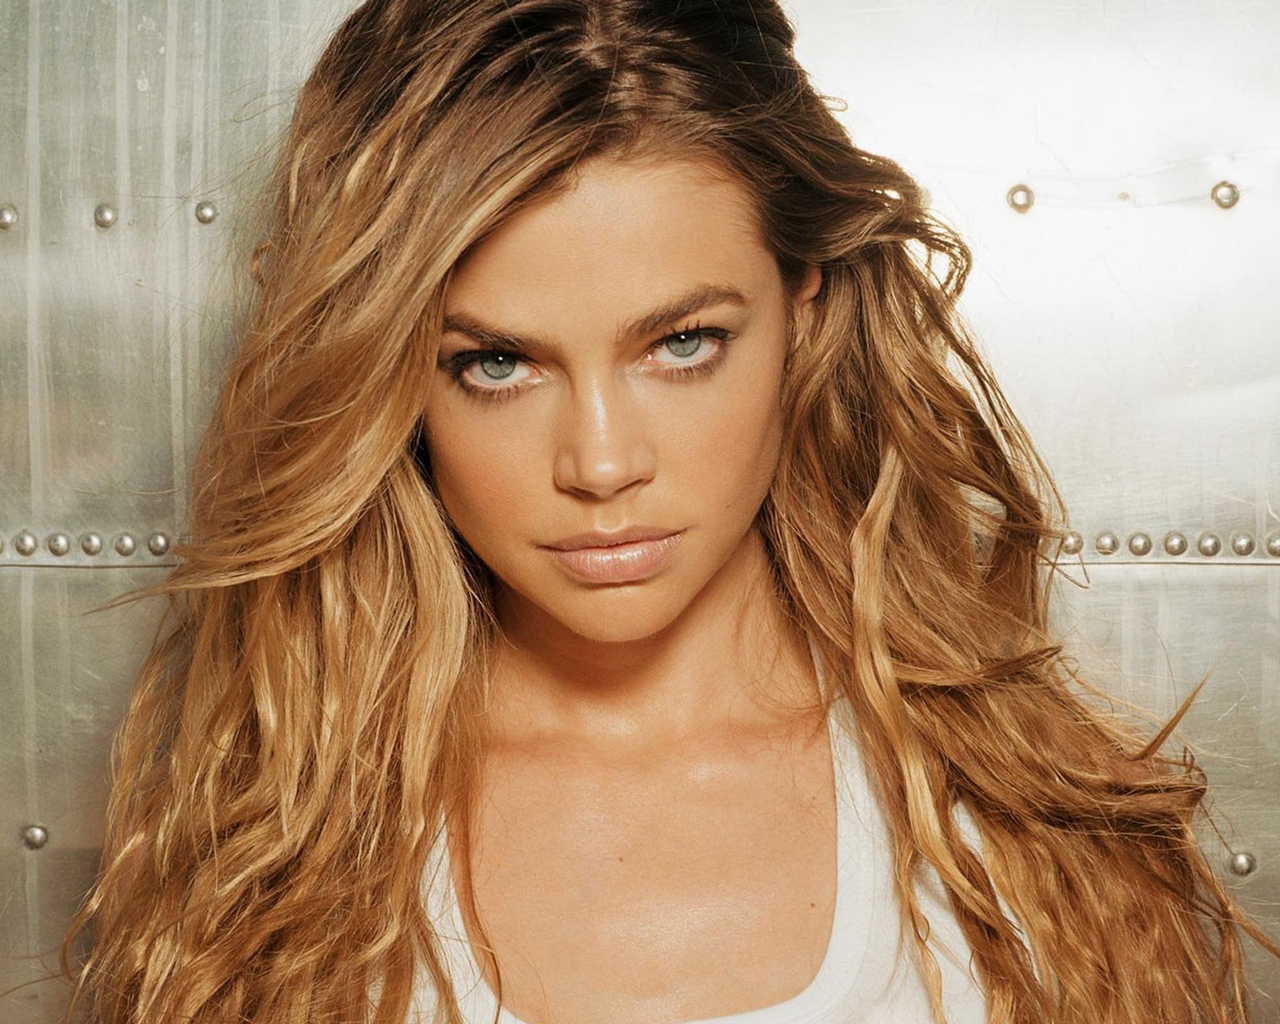 Denise Richards Serious for 1280 x 1024 resolution